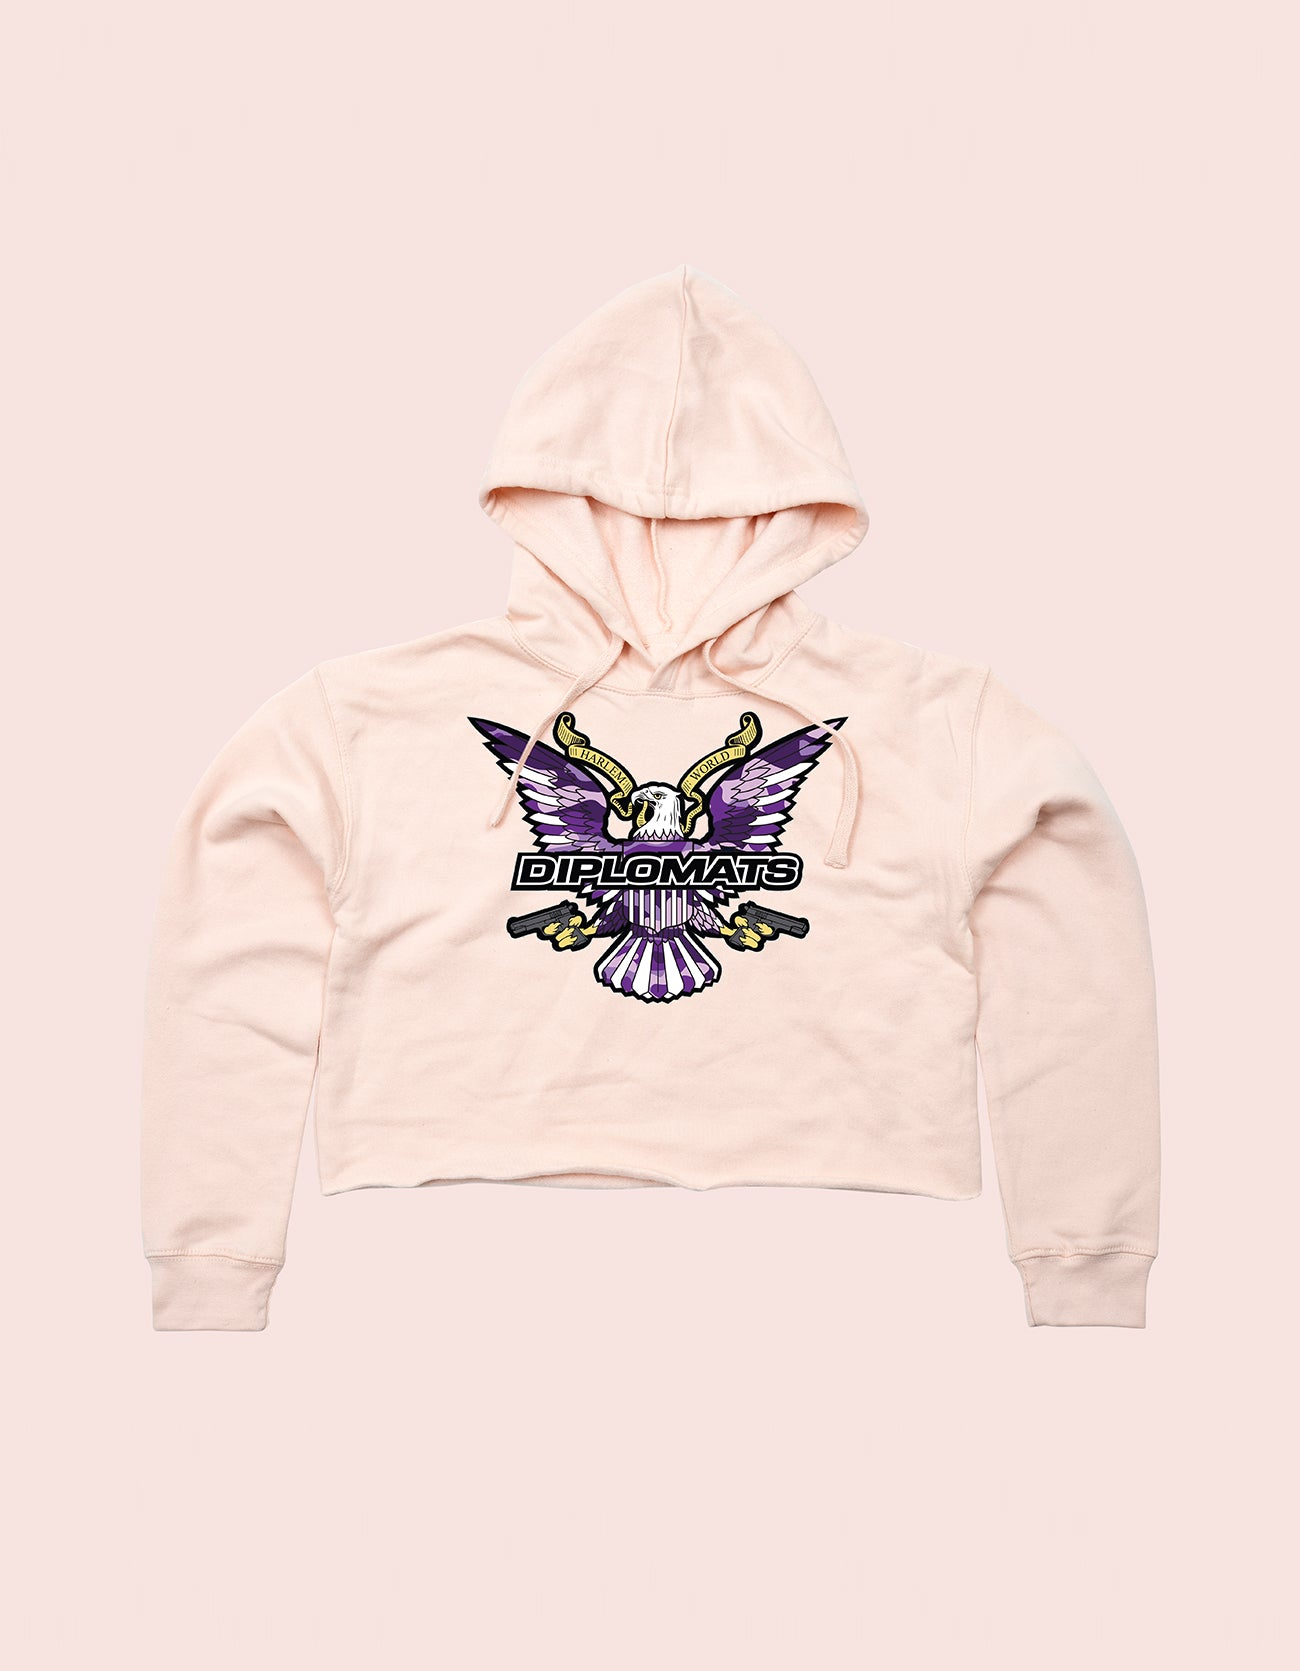 GIRLS CROP TOP HOODIE LIGHT PINK PURPLE CAMO EAGLE